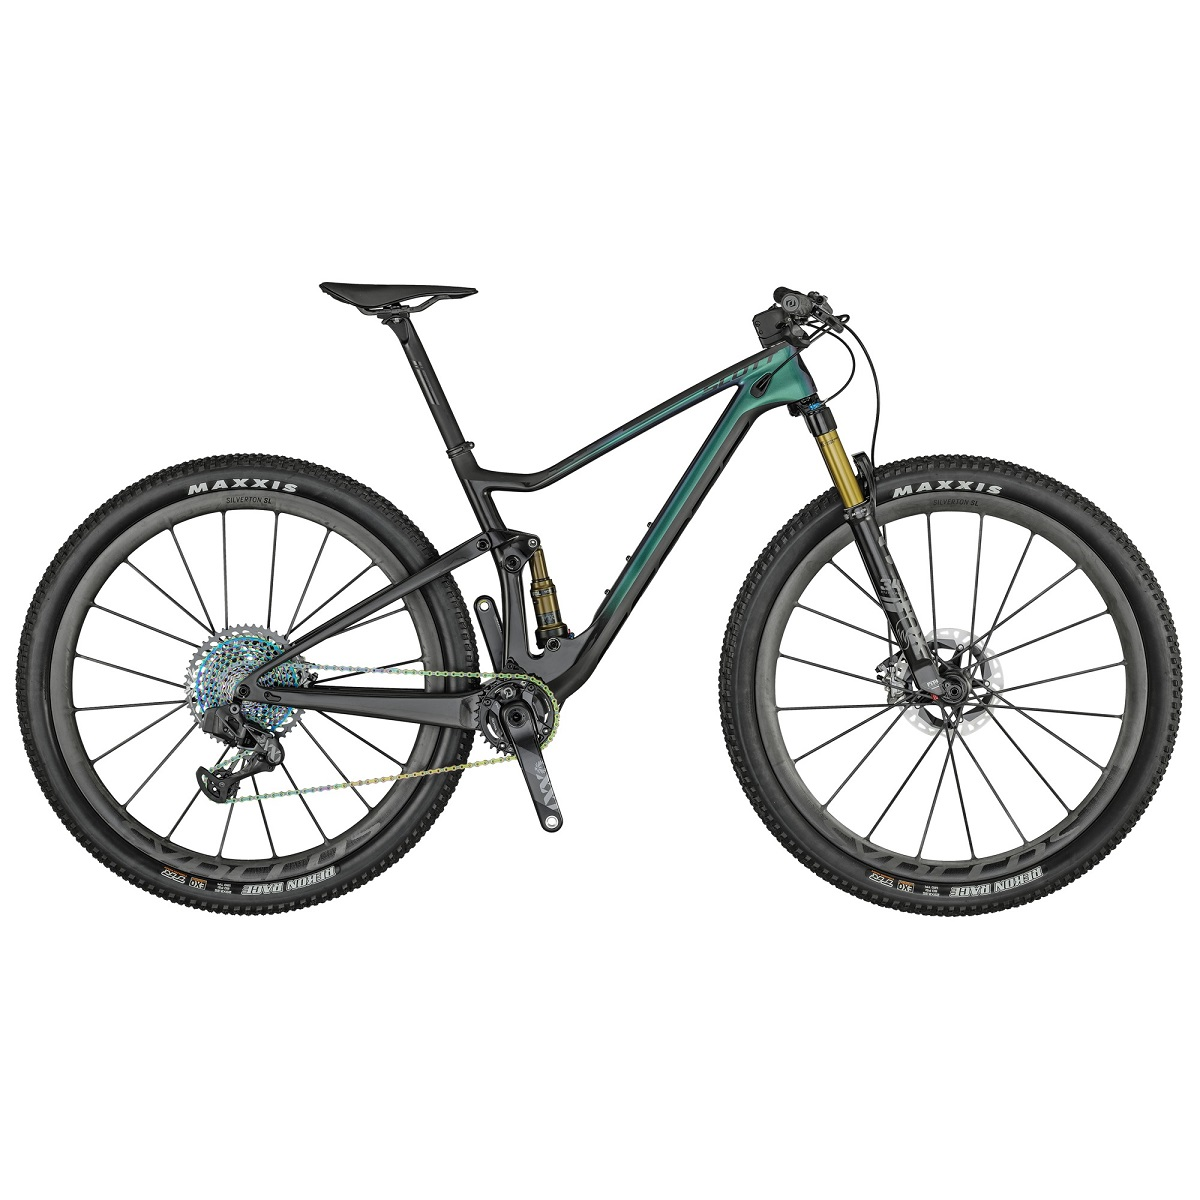 2021 Scott Spark RC 900 SL AXS Mountain Bike